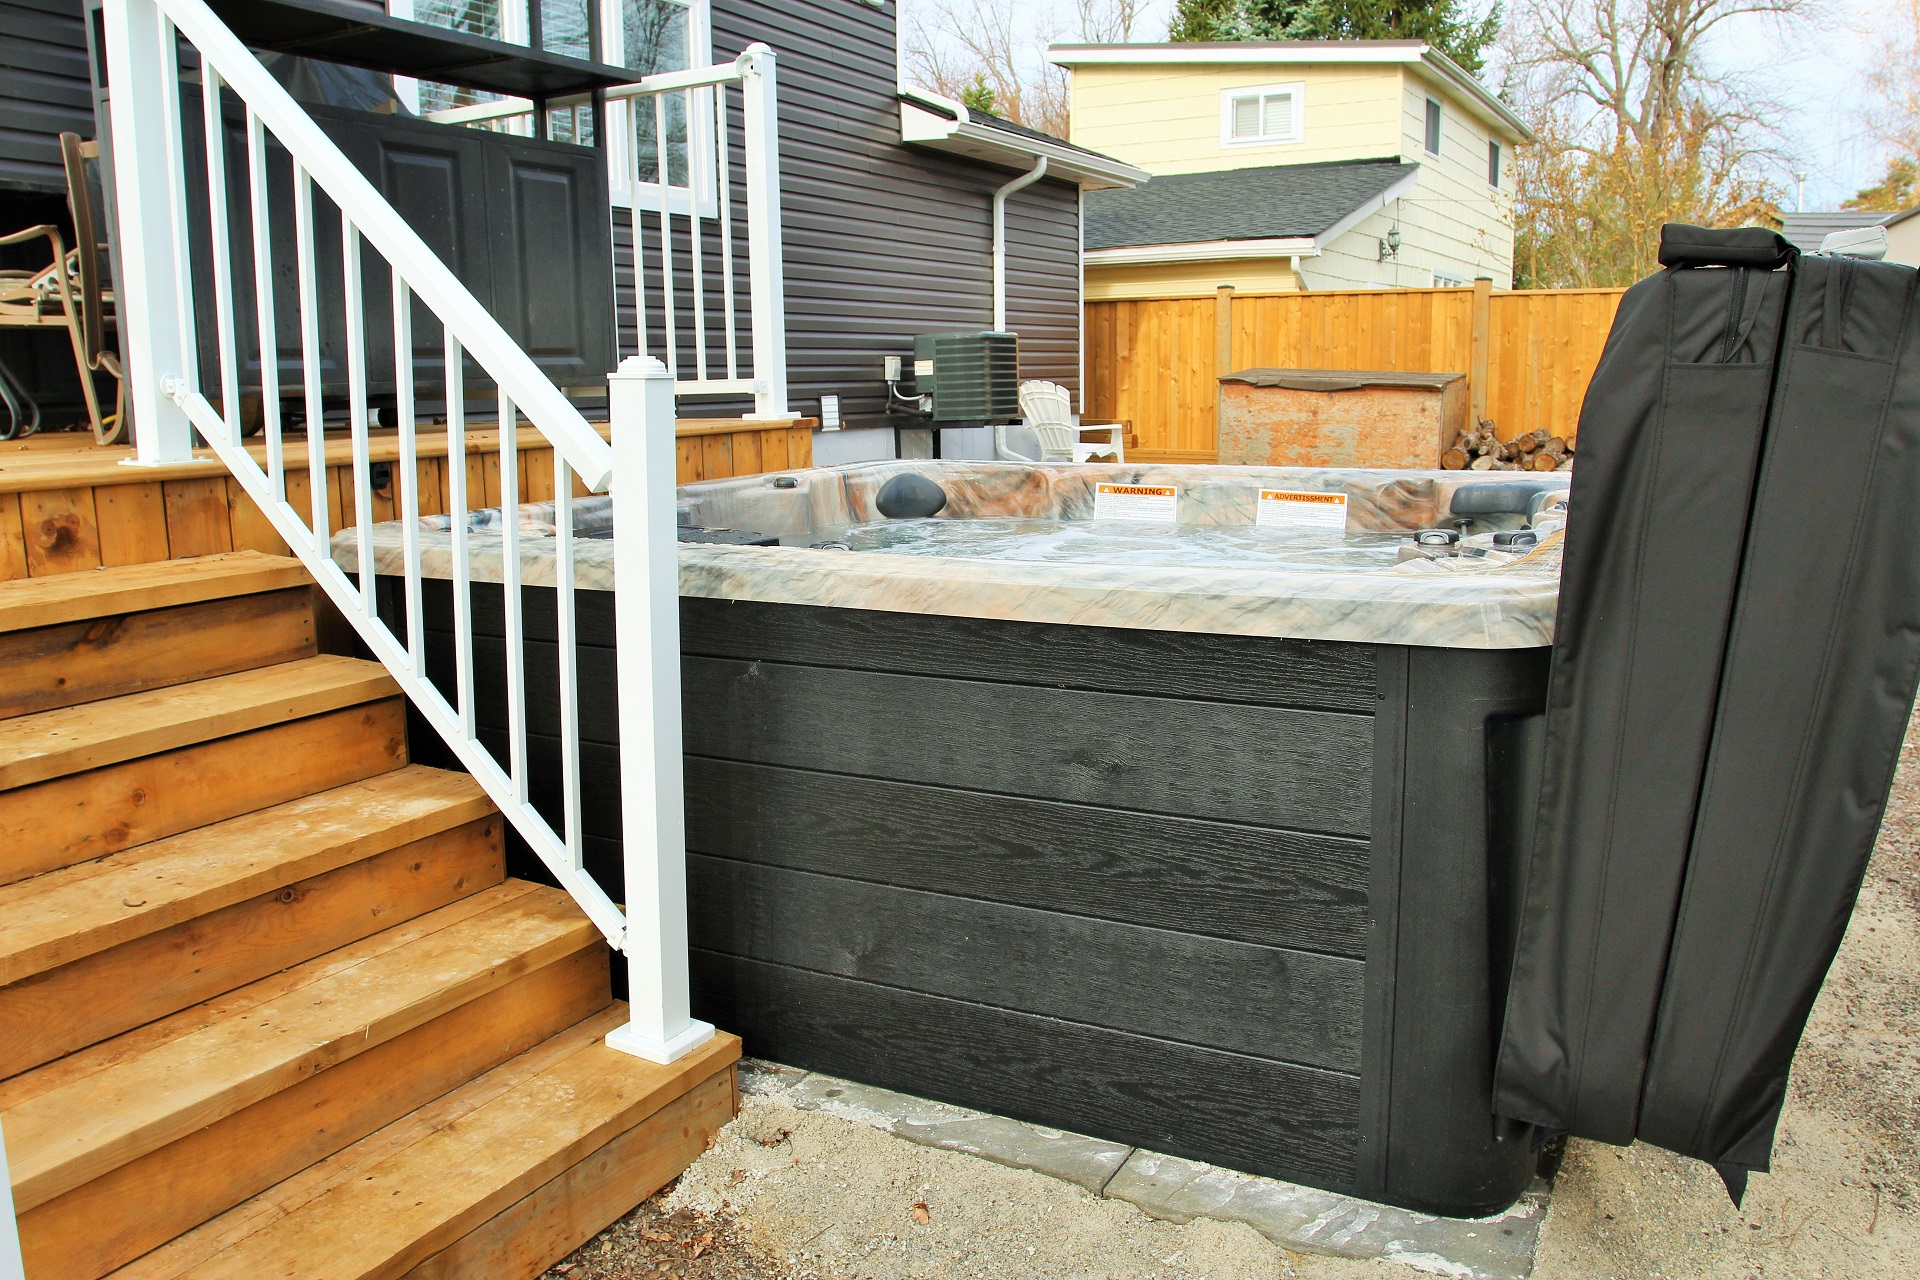 Crystal Clear Cottage-hot tub2-Holiday Homes Property Management-Crystal Beach